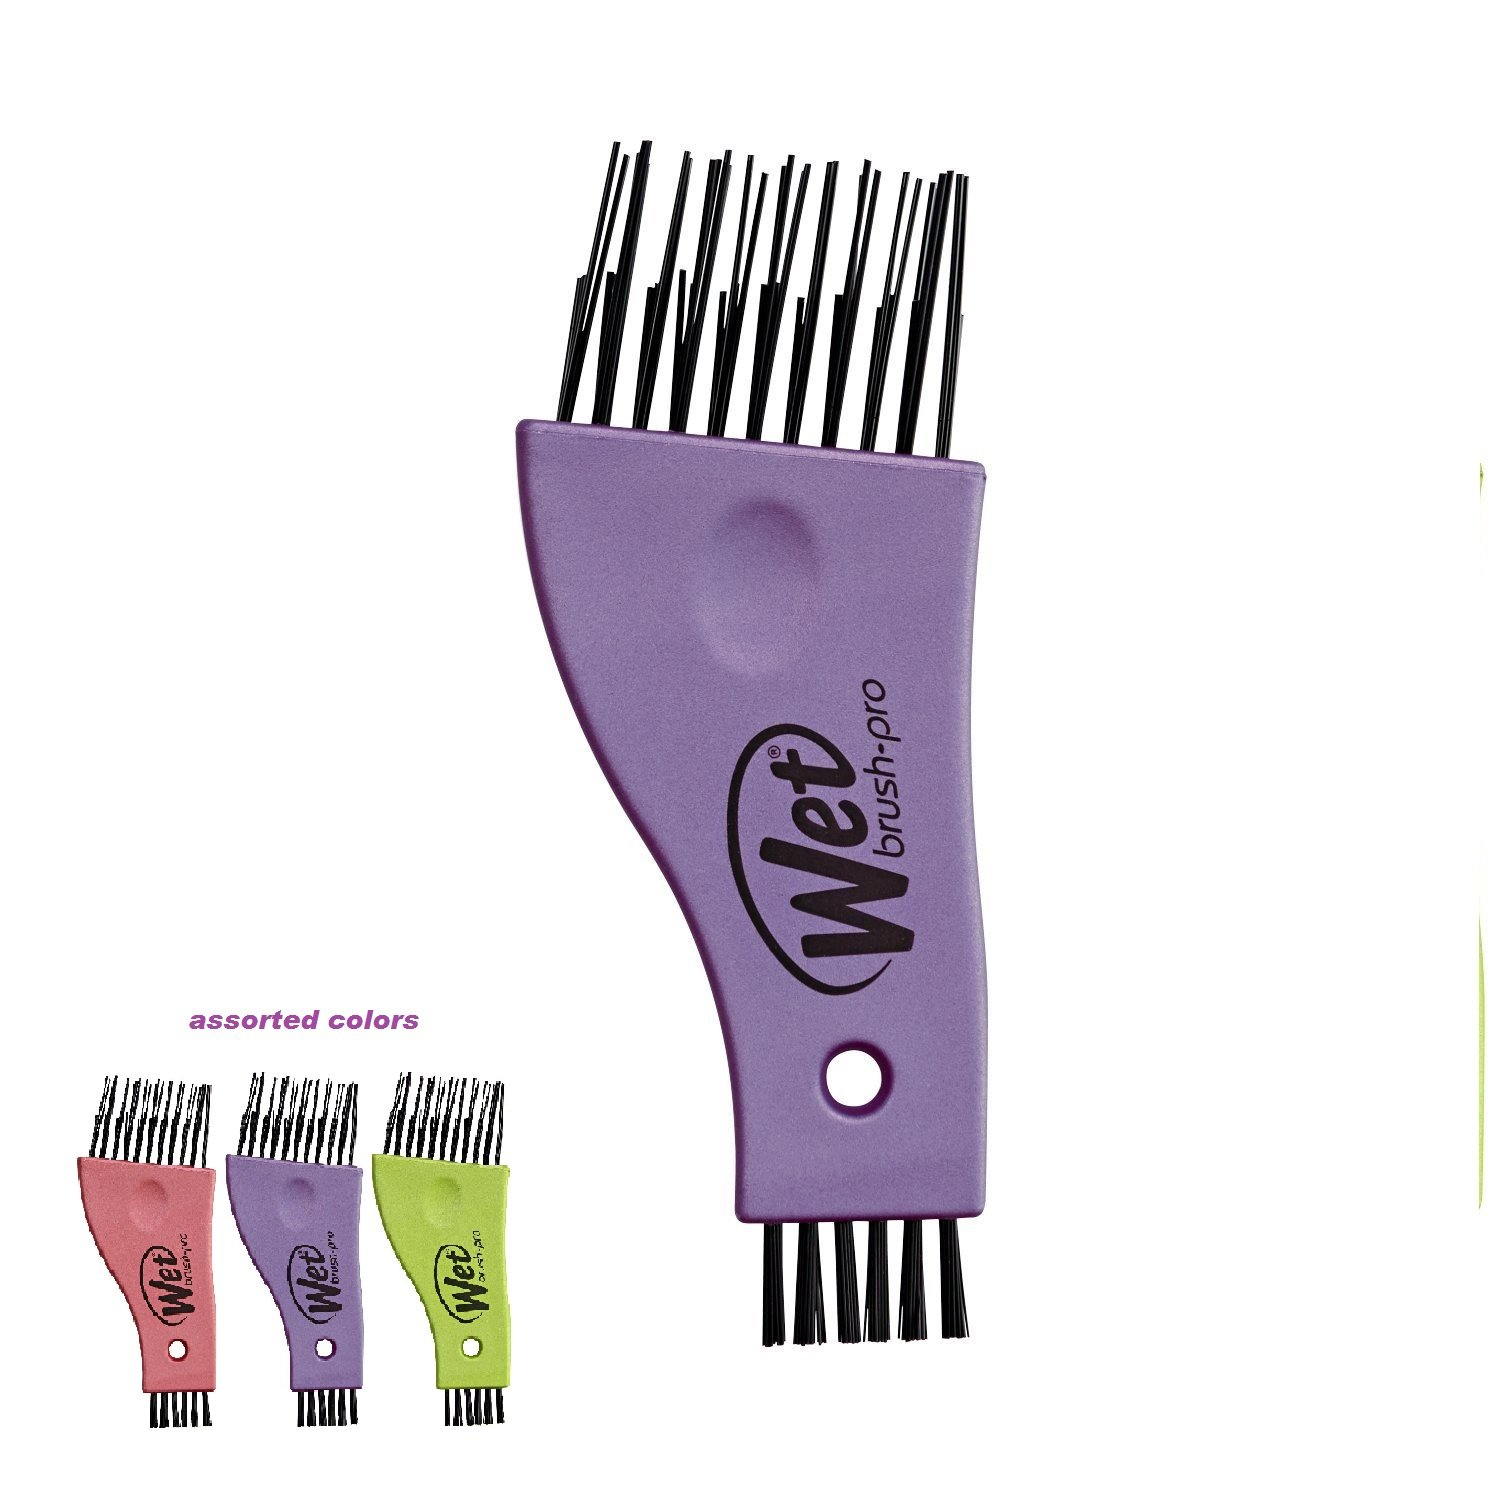 Wet Brush Brush Cleaner Assorted Colors